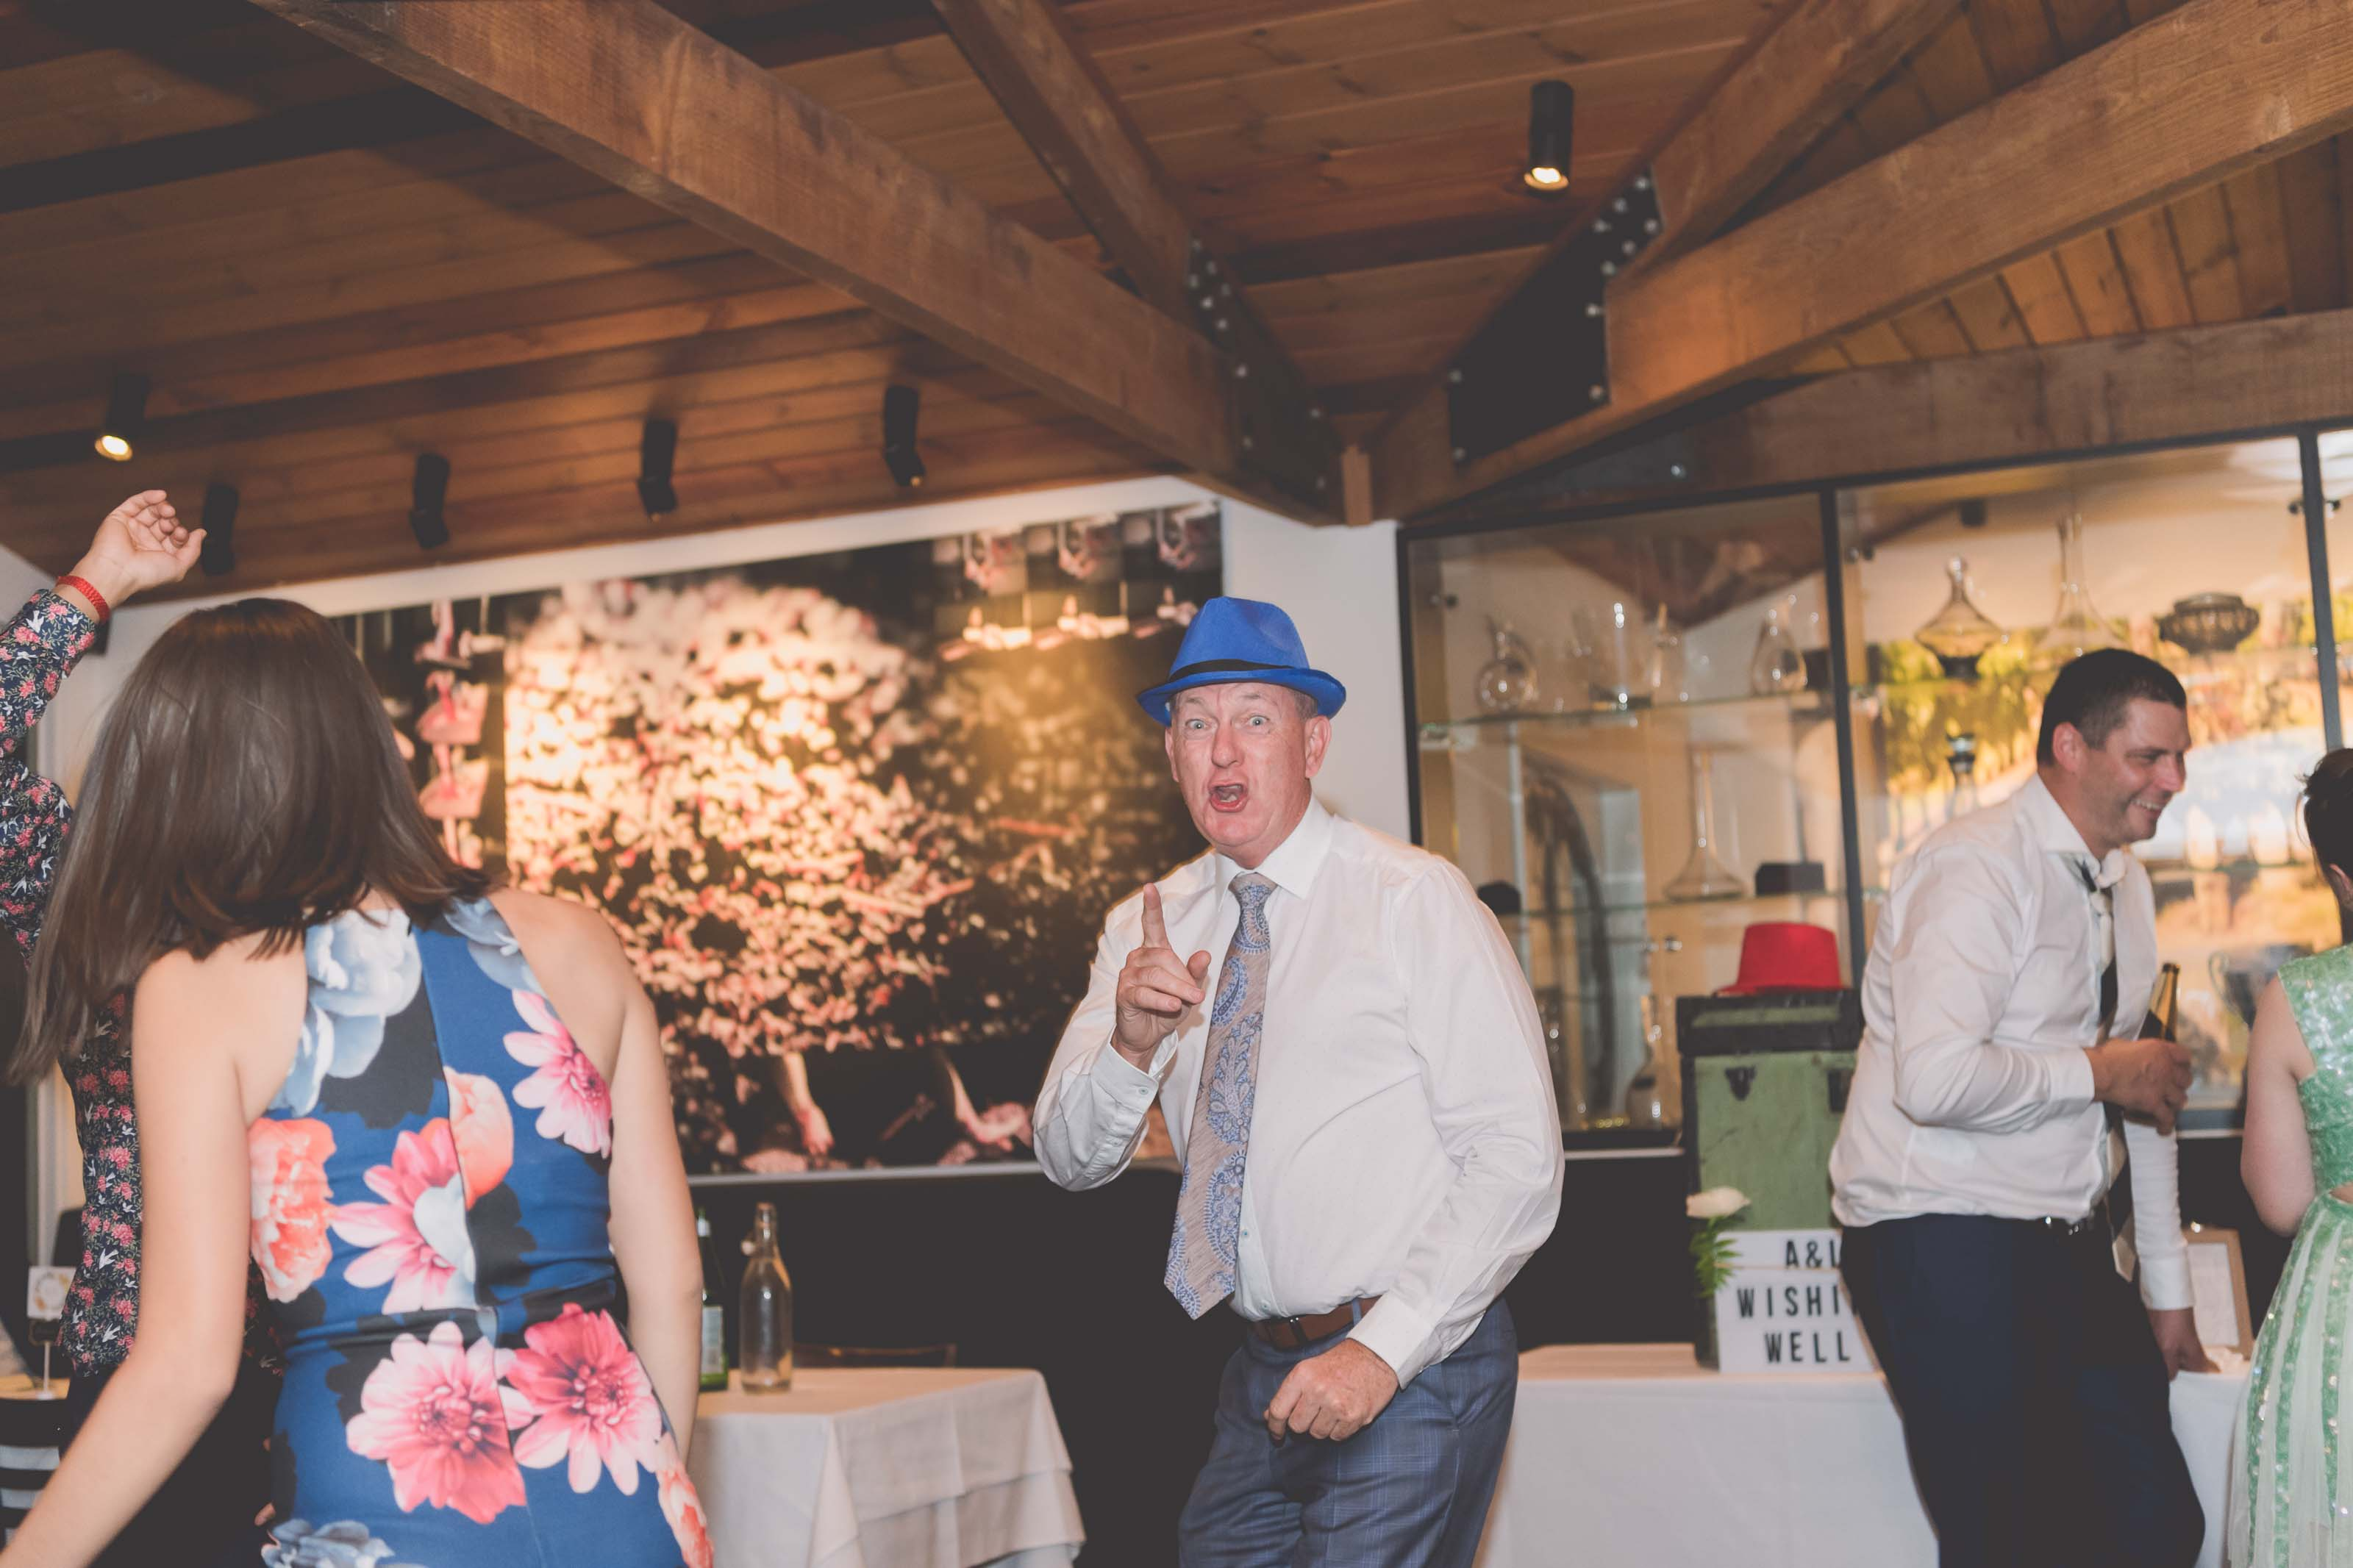 Wedding Photography Melbourne by Pause The Moment - Dance Floor fun at a wedding - Paringa Estate Wedding Photographer